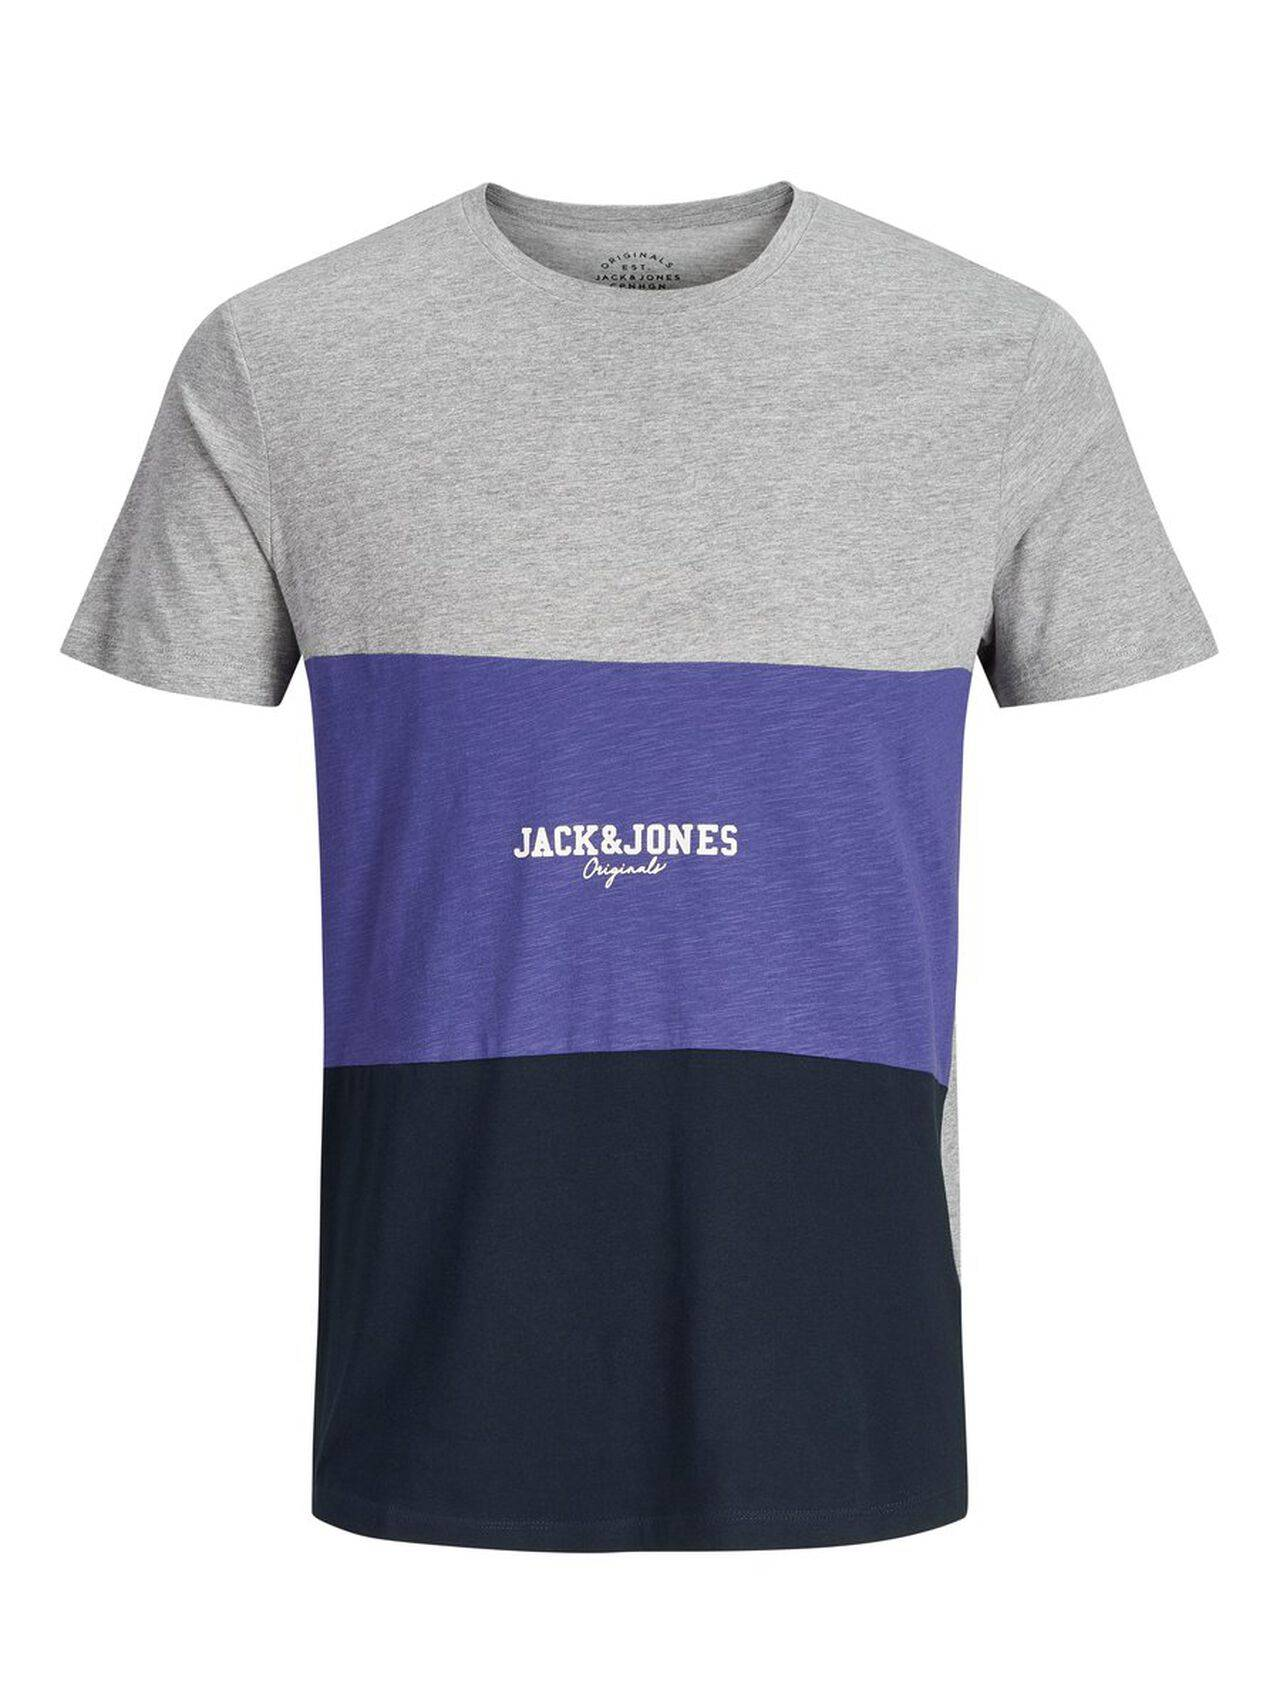 JACK & JONES Colour Block T-shirt Men Grey LightGreyMelange